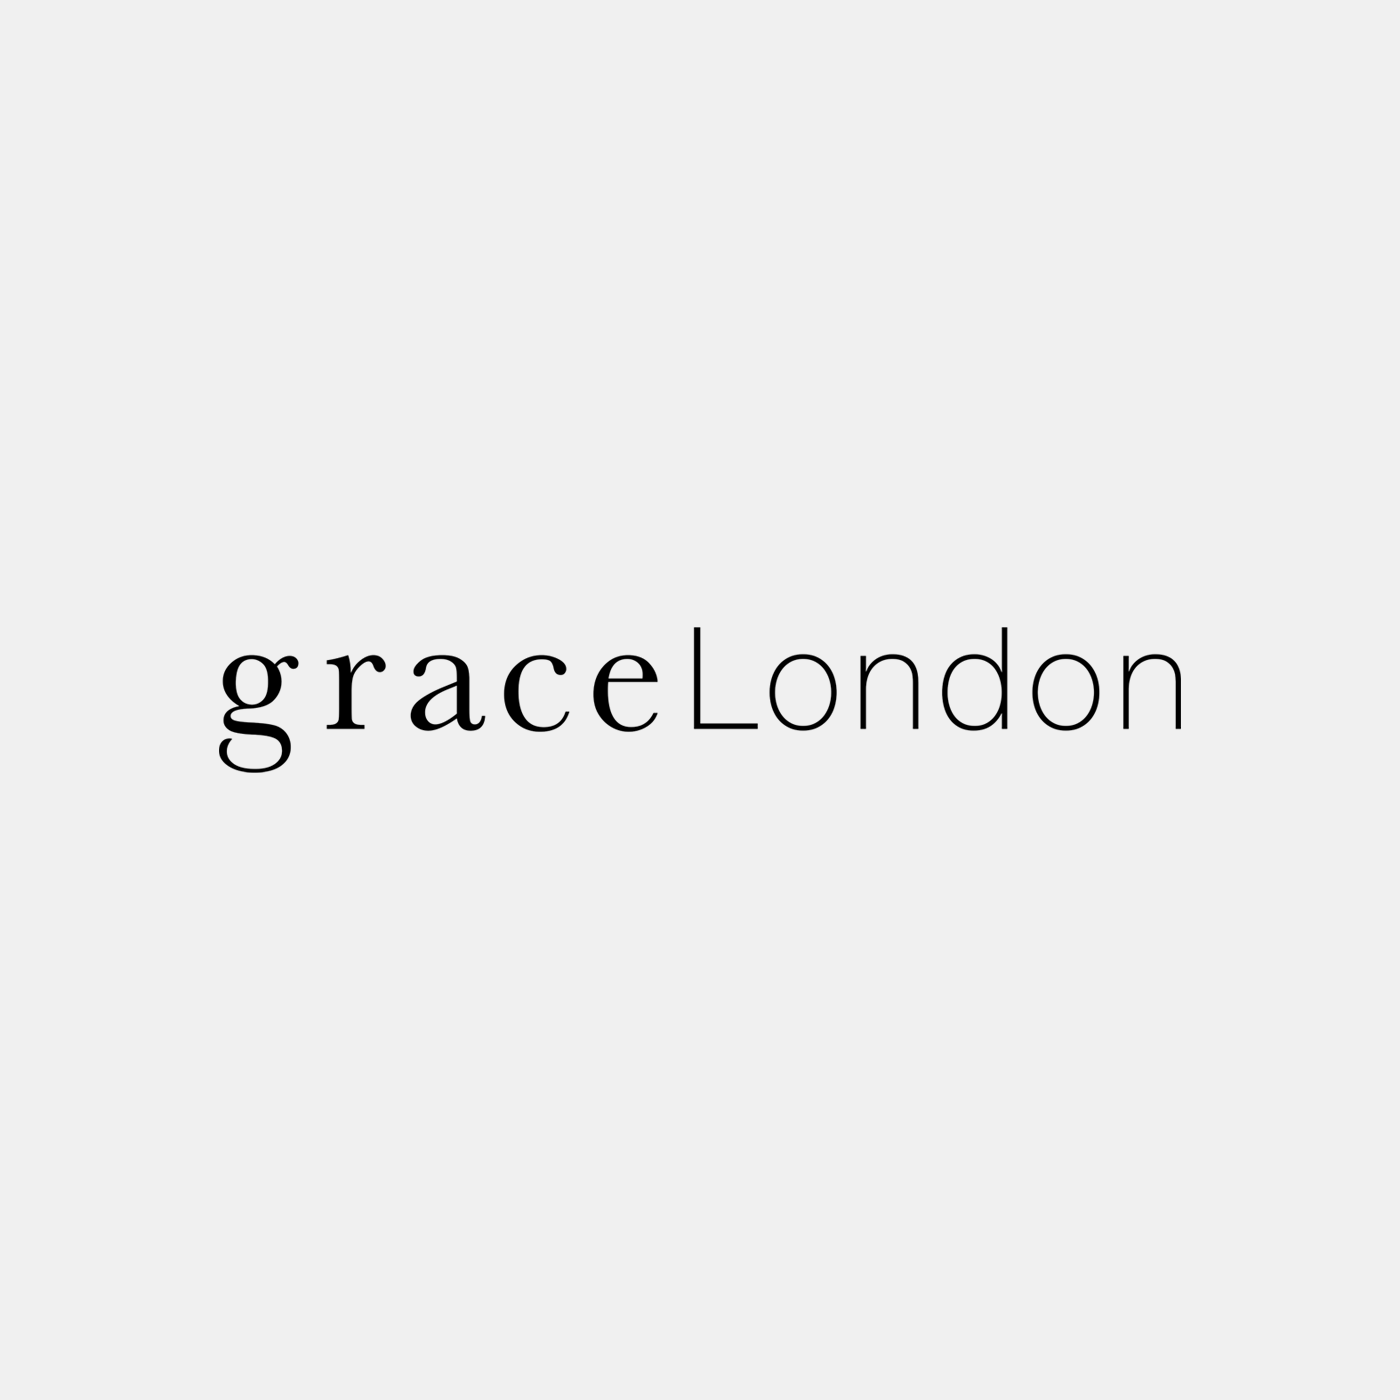 Grace London | Sermons